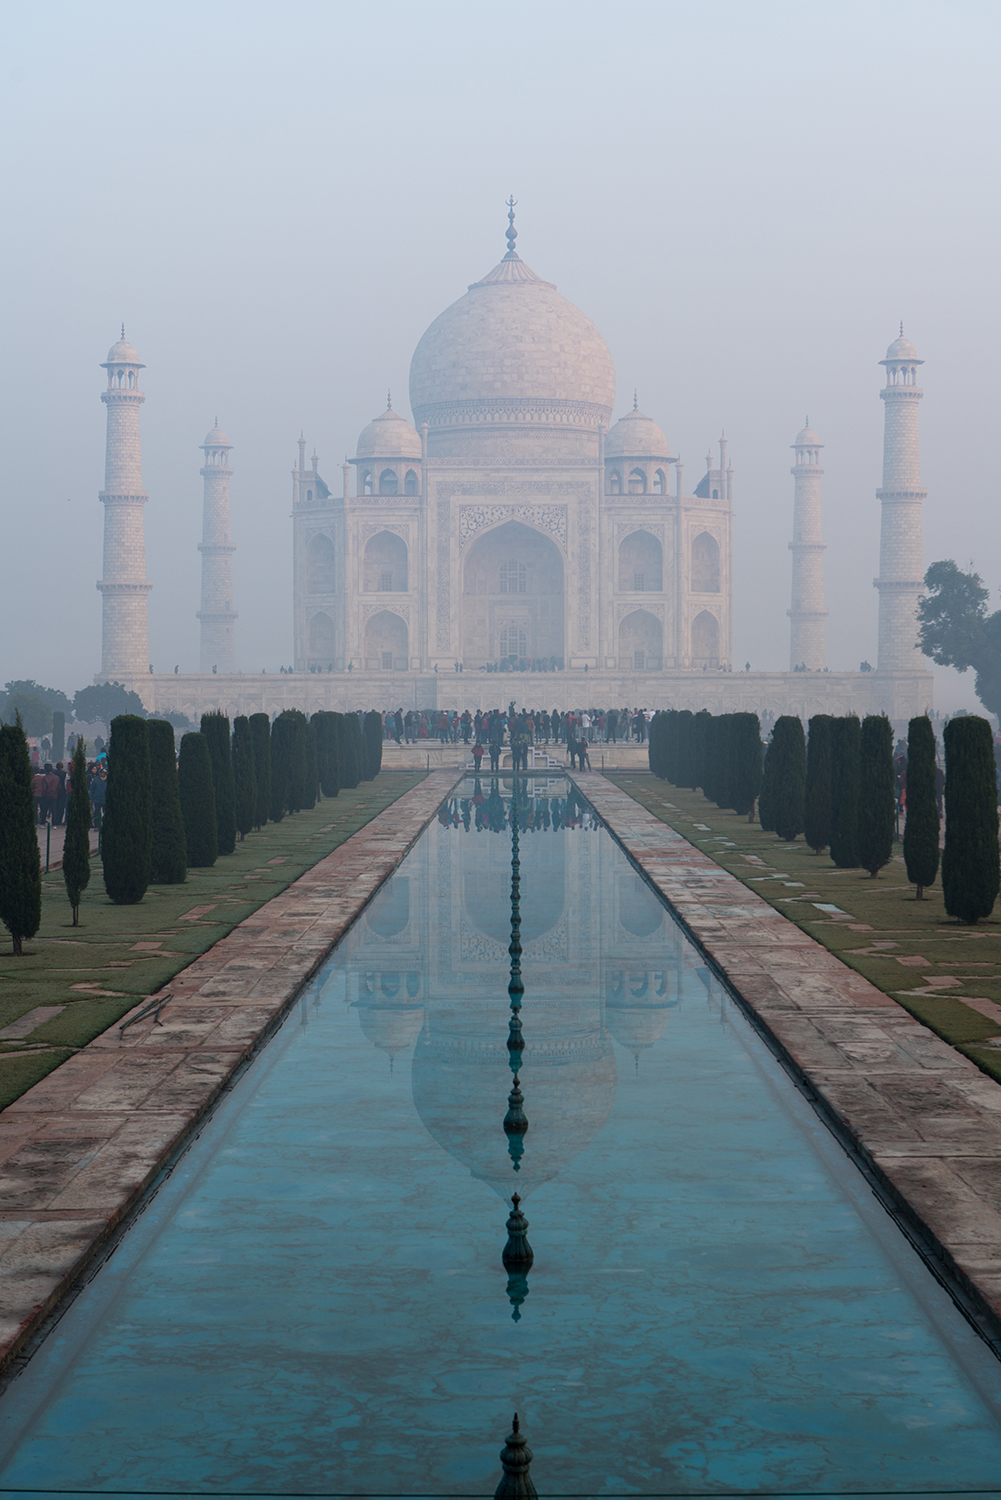 The famous shot of the Taj Mahal reflecting in one of the many pools.